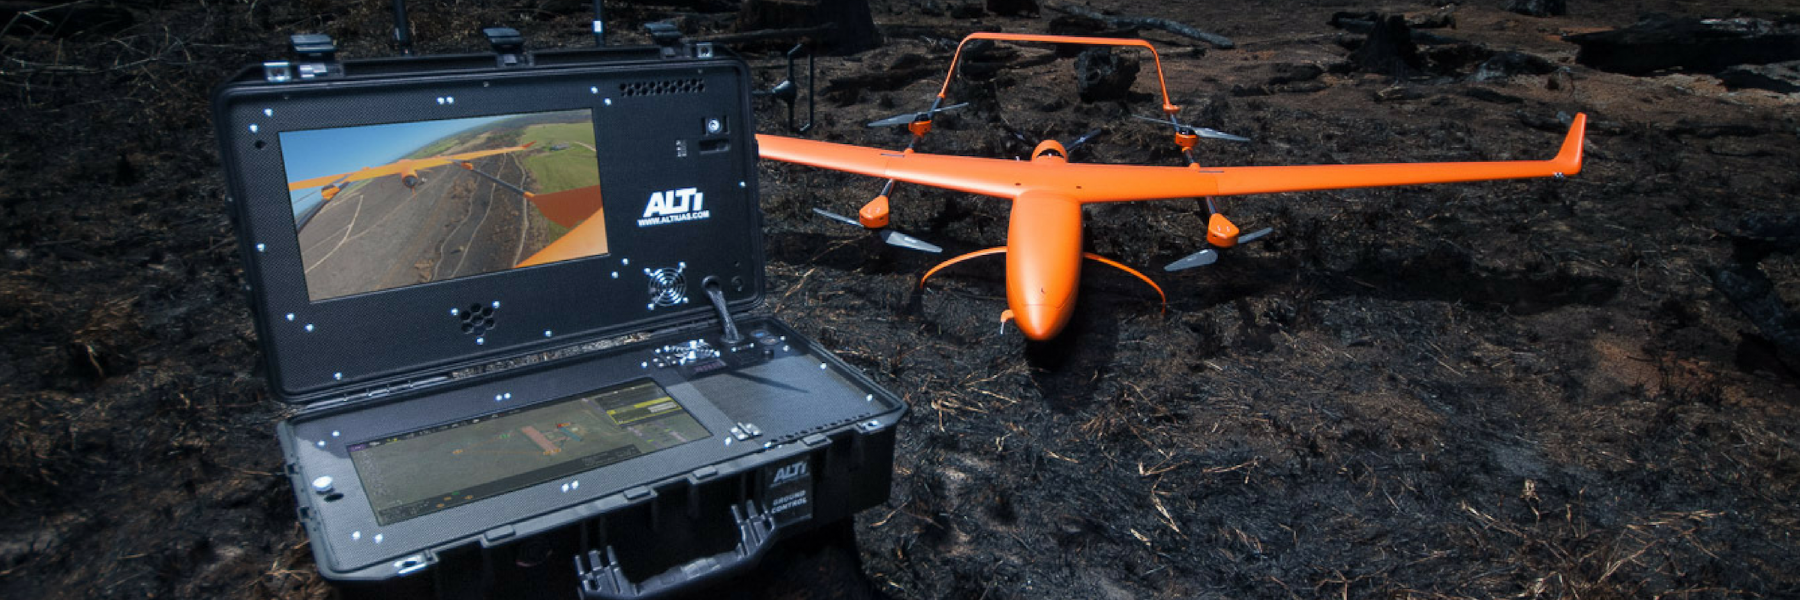 ALTI_UAV_UAS-Drone-Major-Consultancy-Services-Solutions-Hub